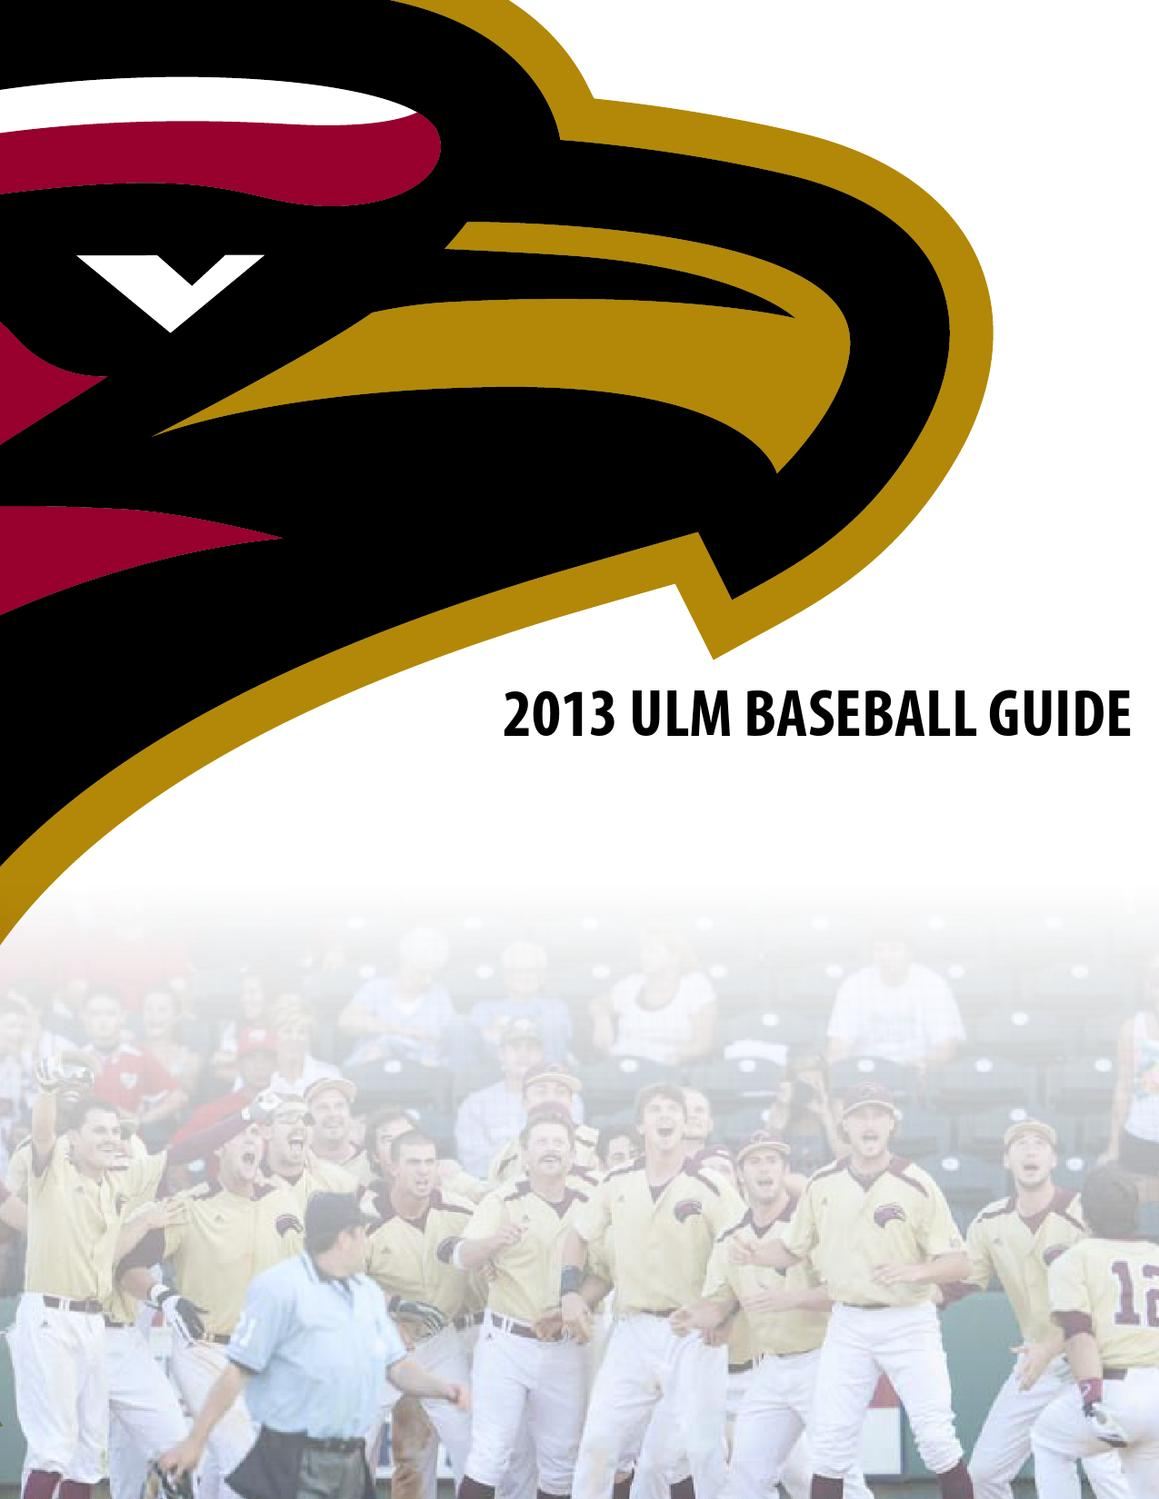 807746291 2013 ULM Baseball Guide by ULM - issuu